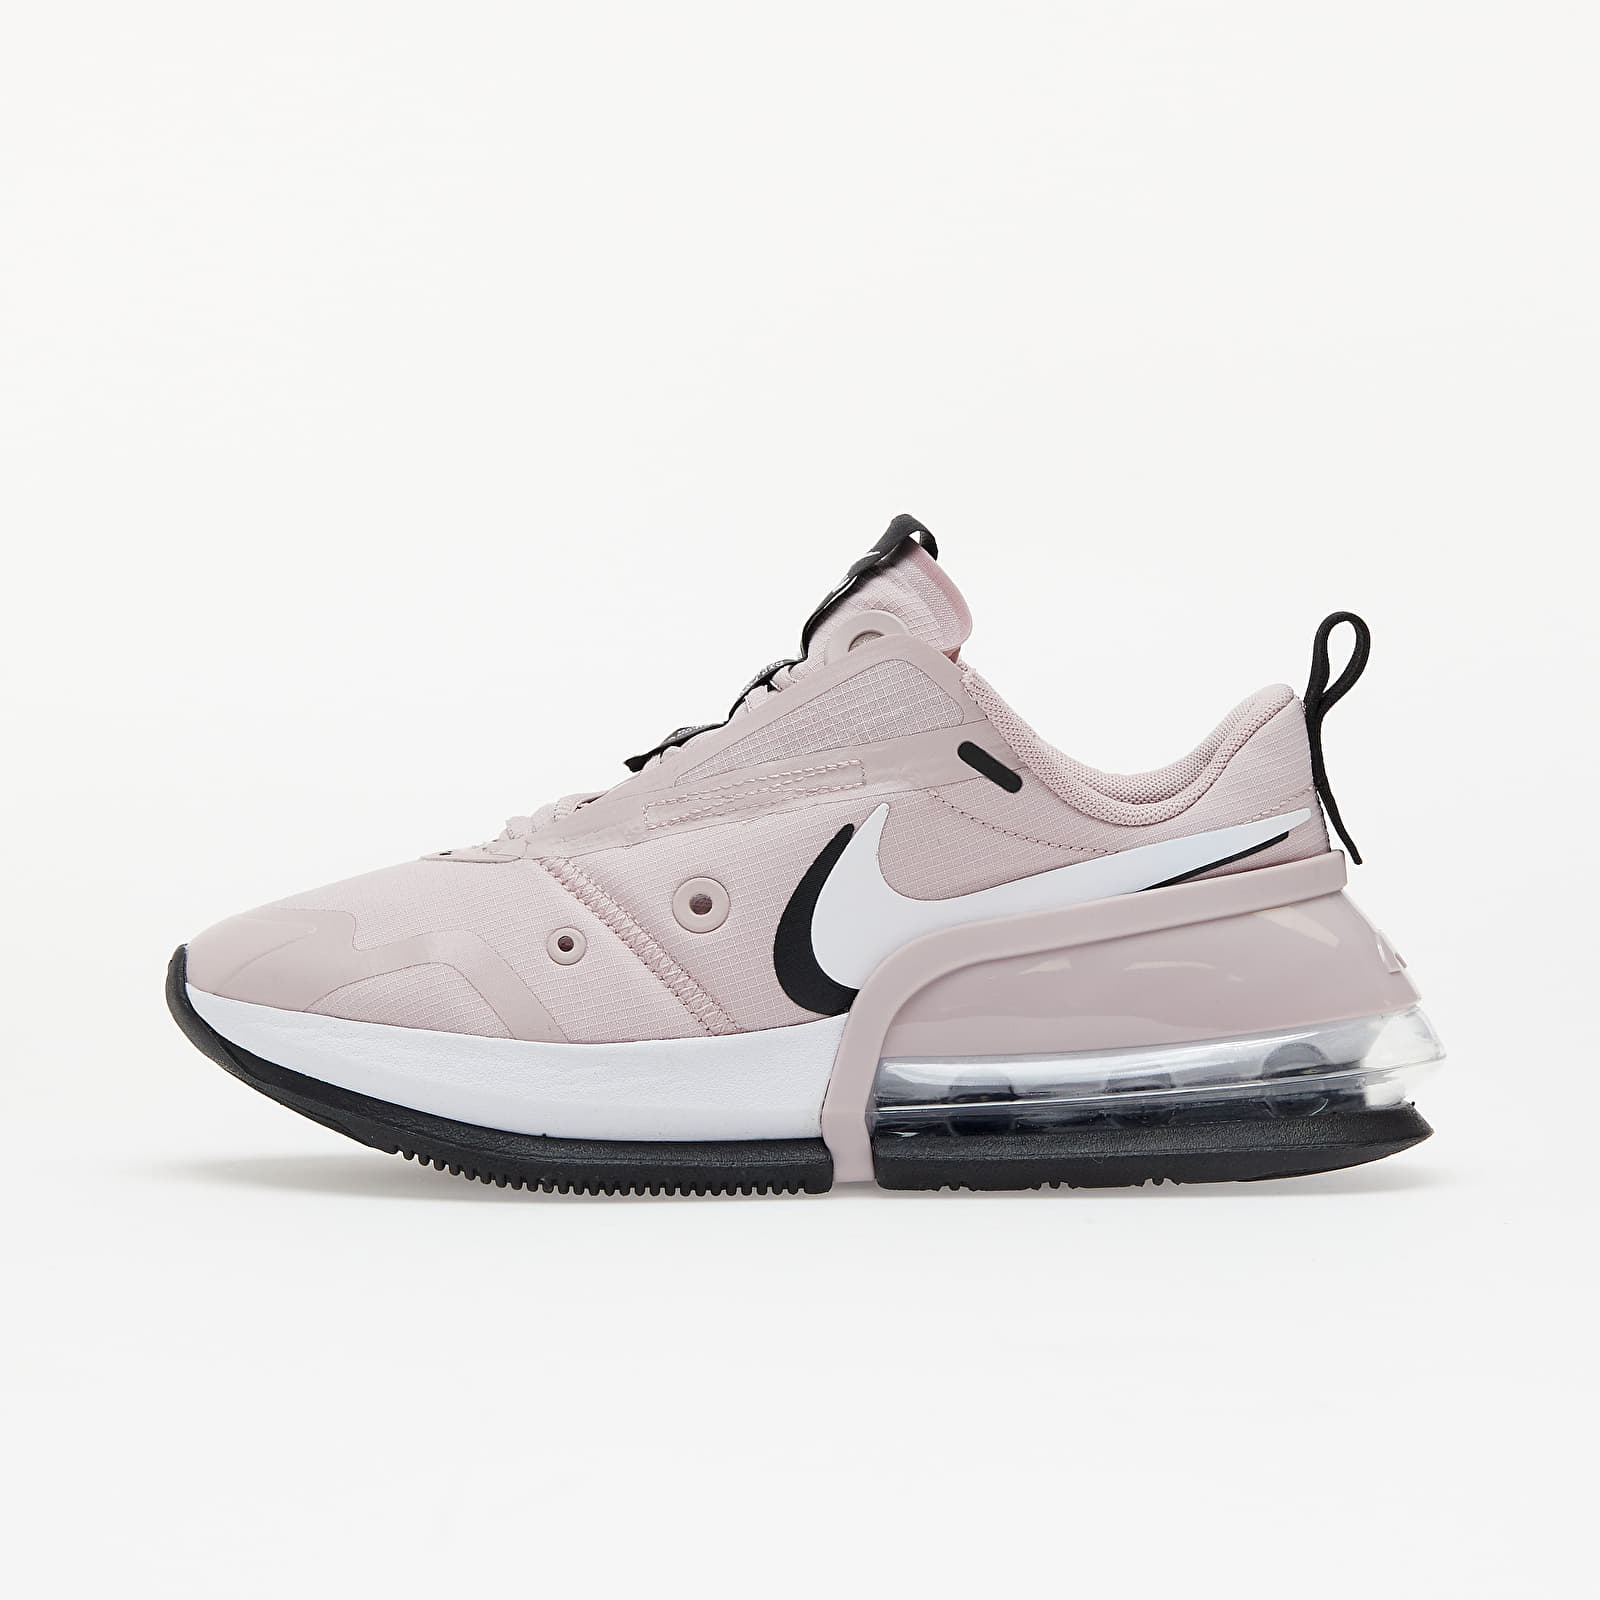 Nike W Air Max Up Champagne/ White-Black-Metallic Silver EUR 41